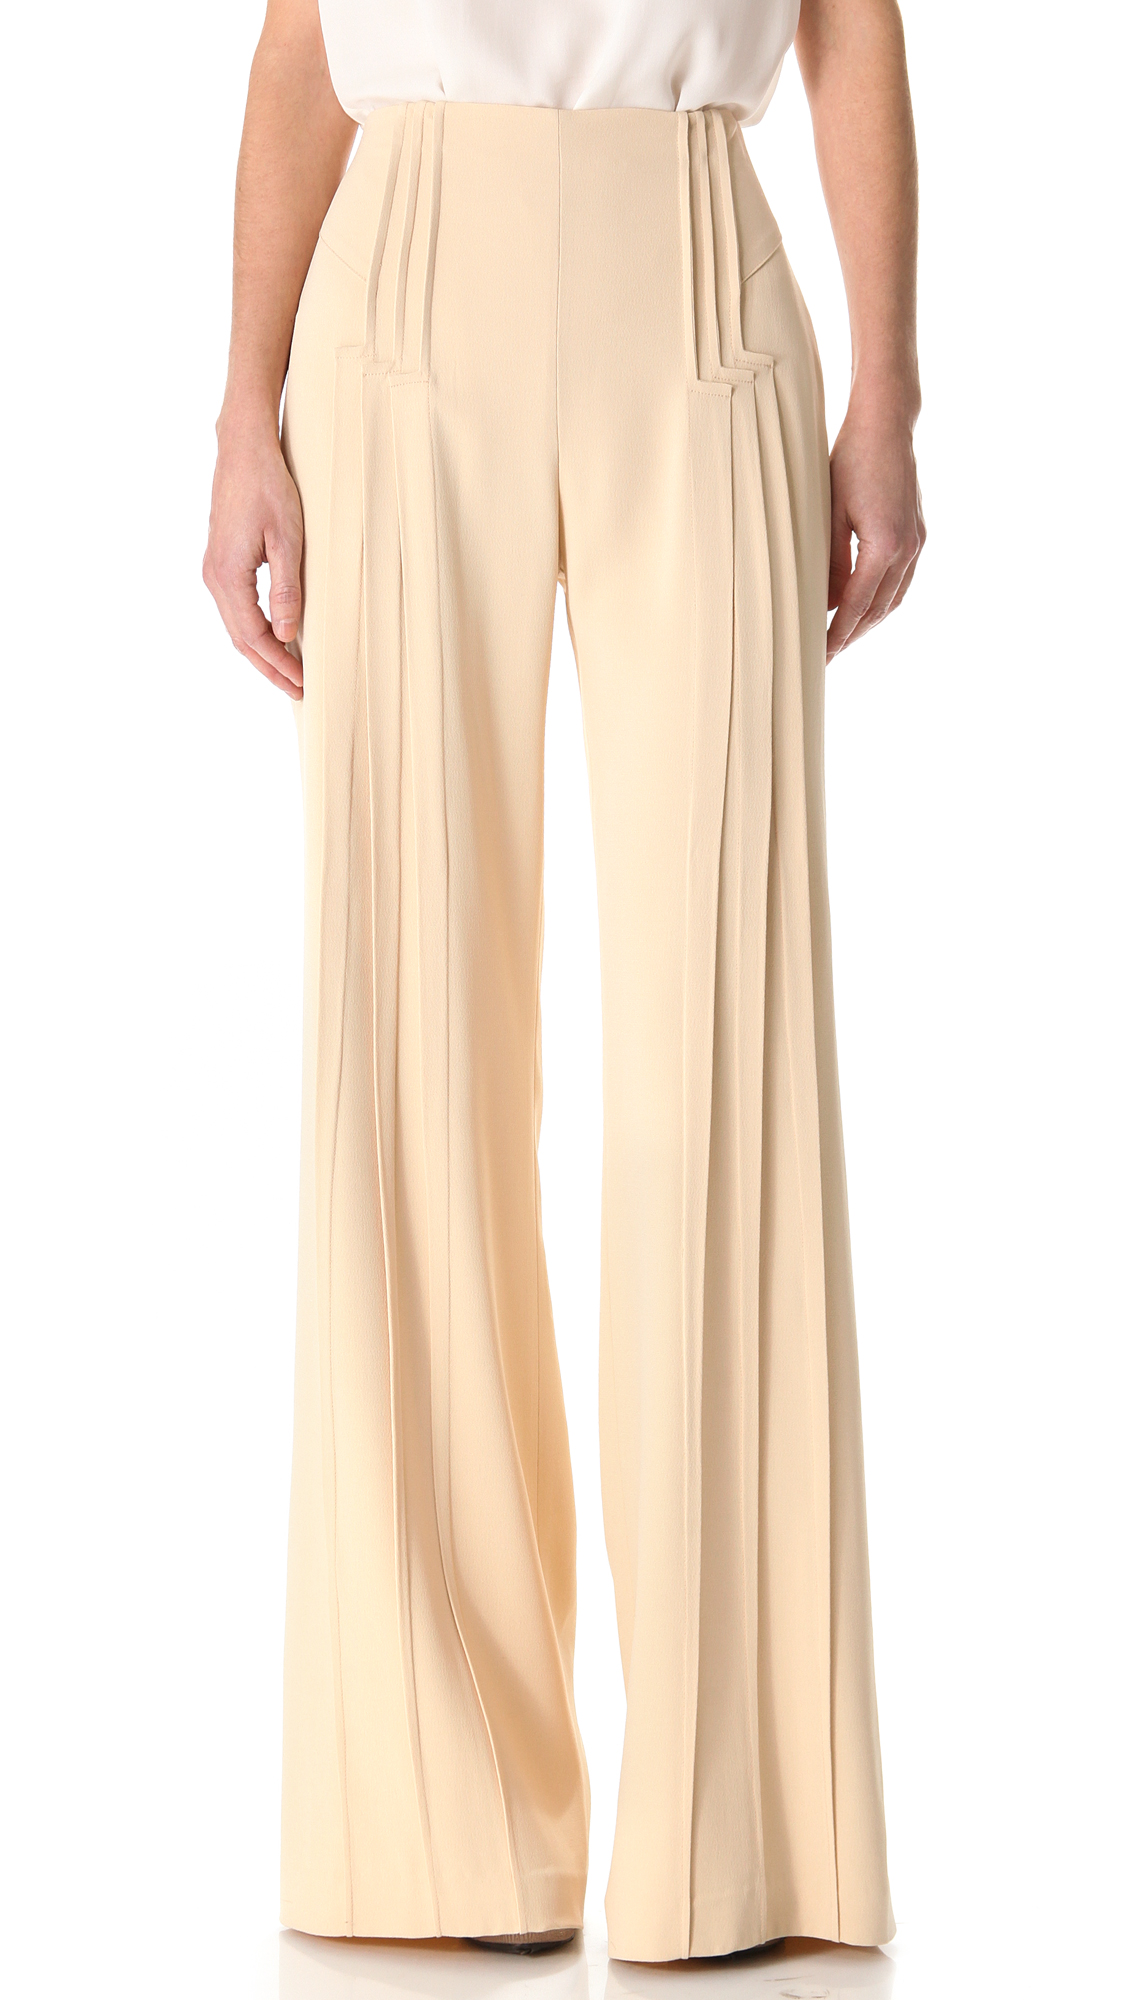 Typically, slim pants for women measure 10 to 14 inches around the ankle, while wide-leg pants go up to 20 inches. The flared or bell bottom style, usually with a fitted cut through the thigh, rounds out at the ankle at 21 inches or more.